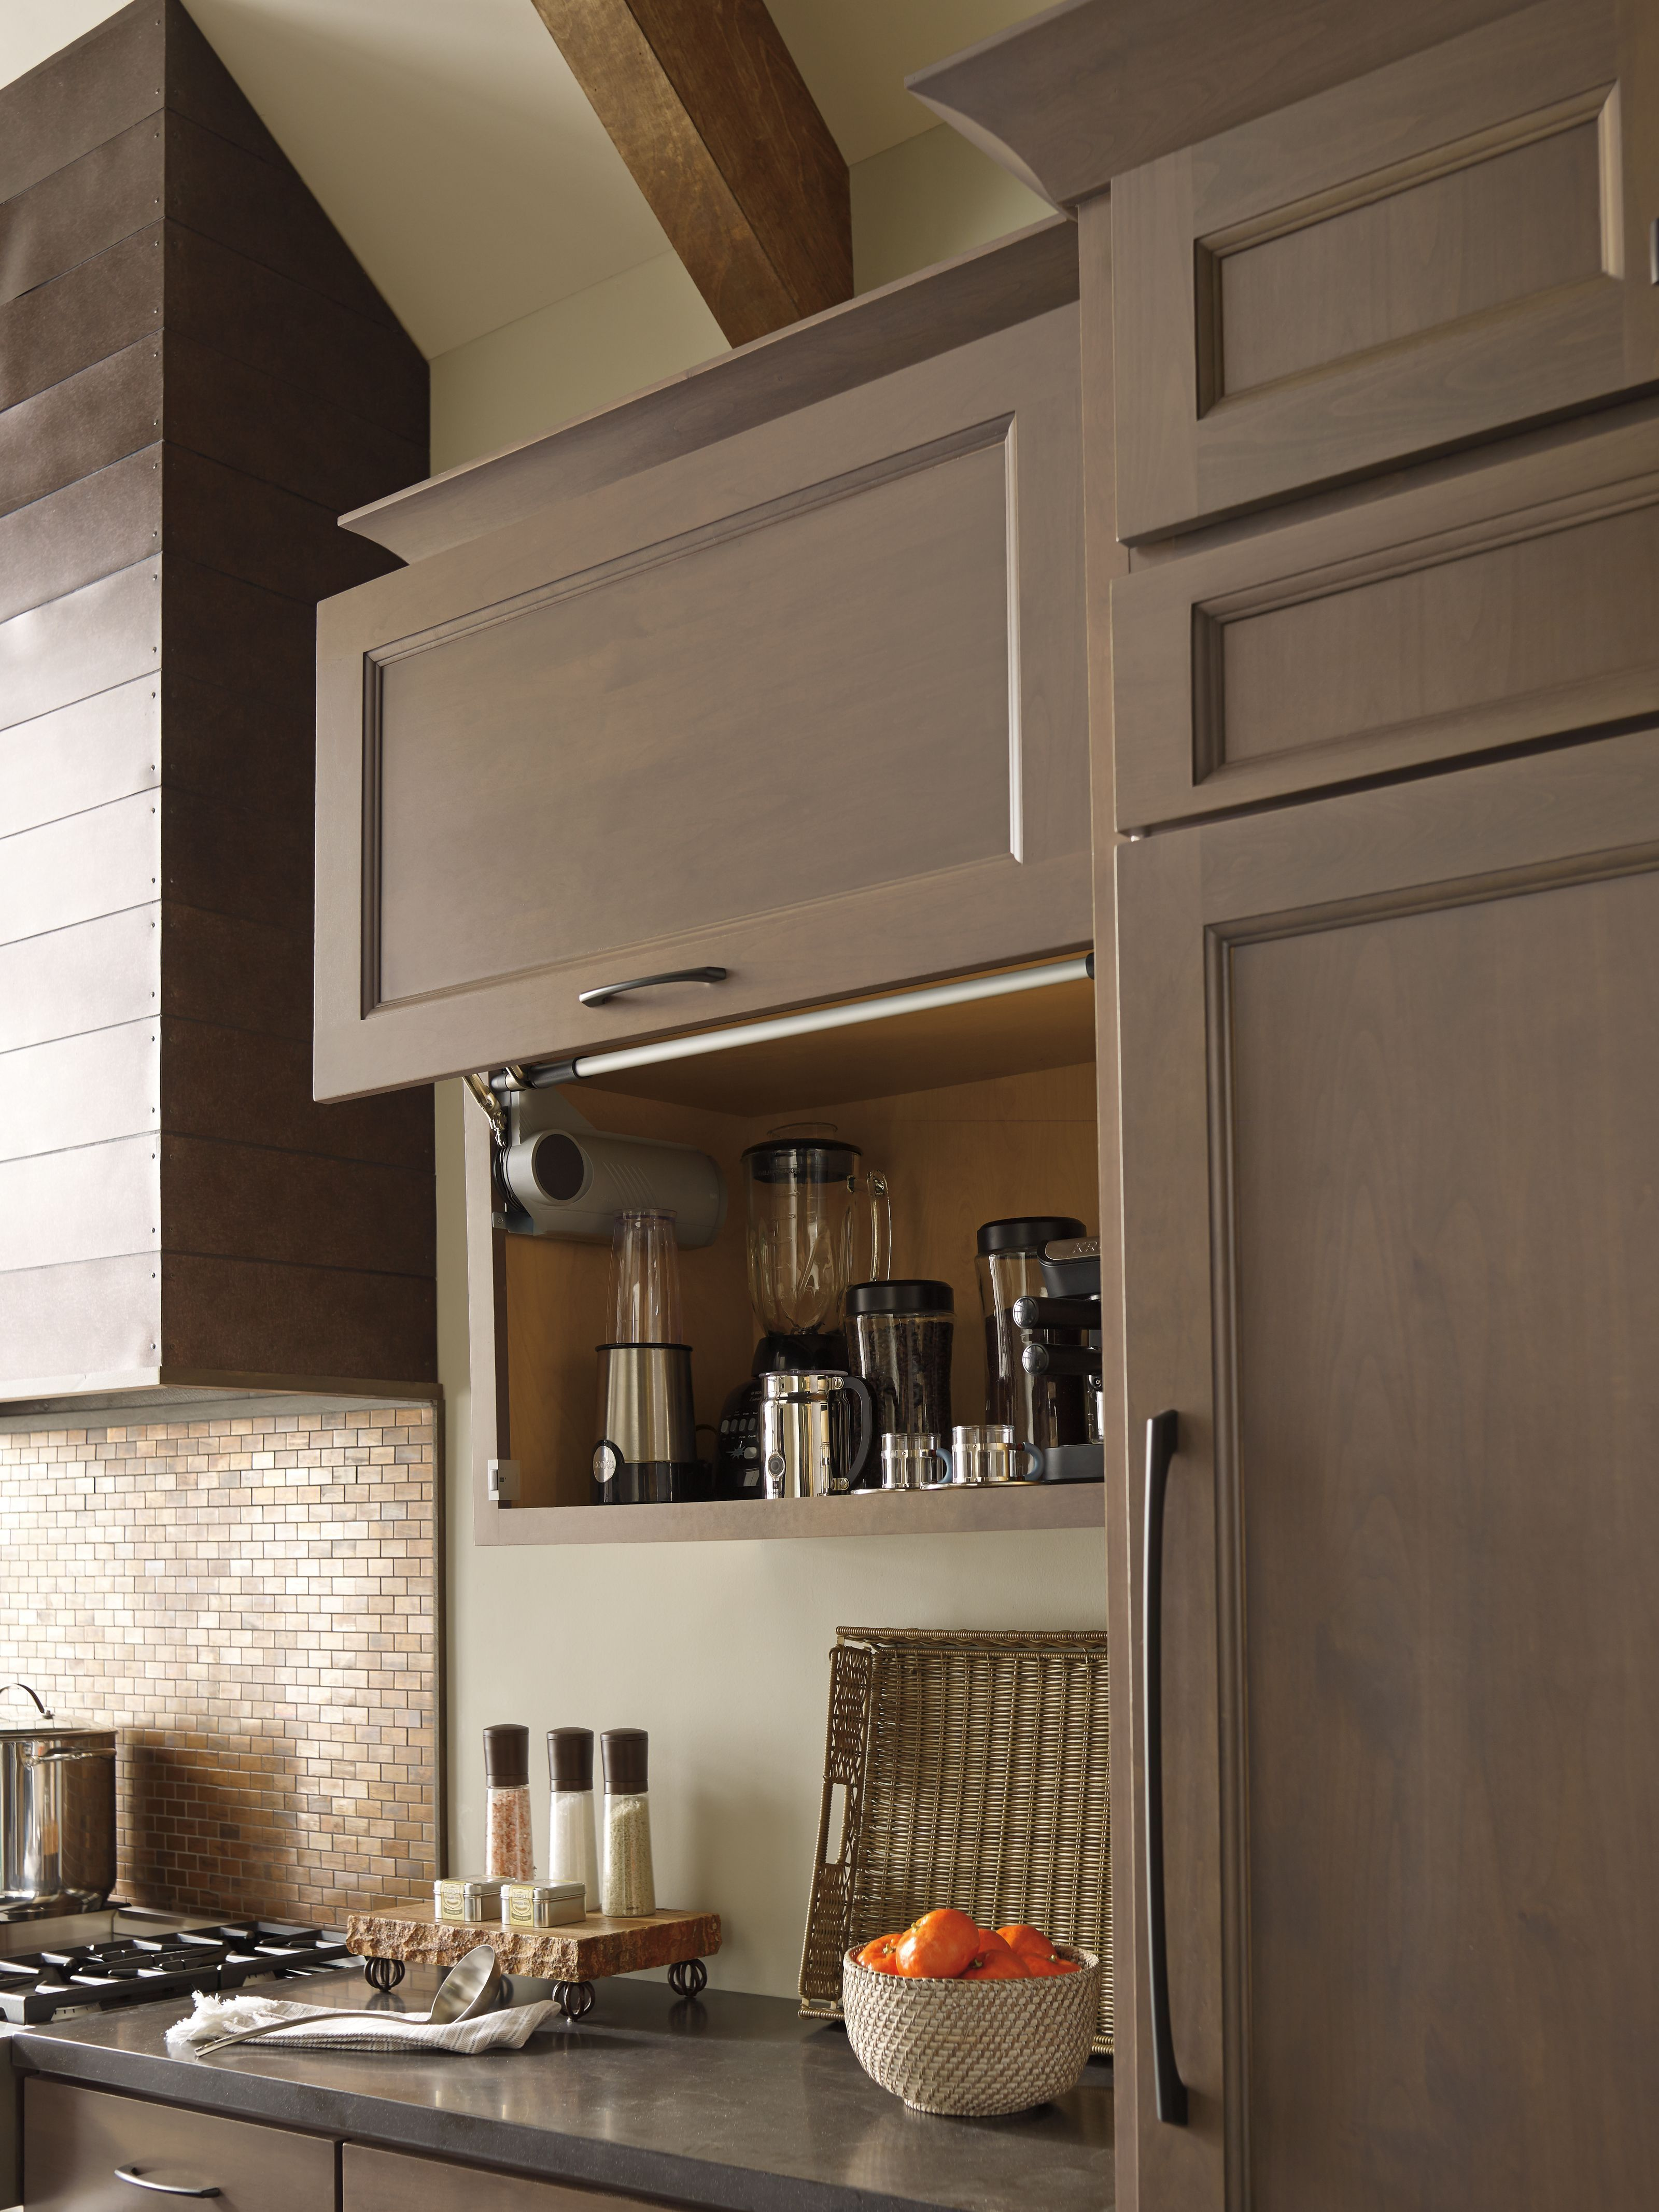 Home Open Kitchen Cabinets Cabinet Doors Decora Cabinets